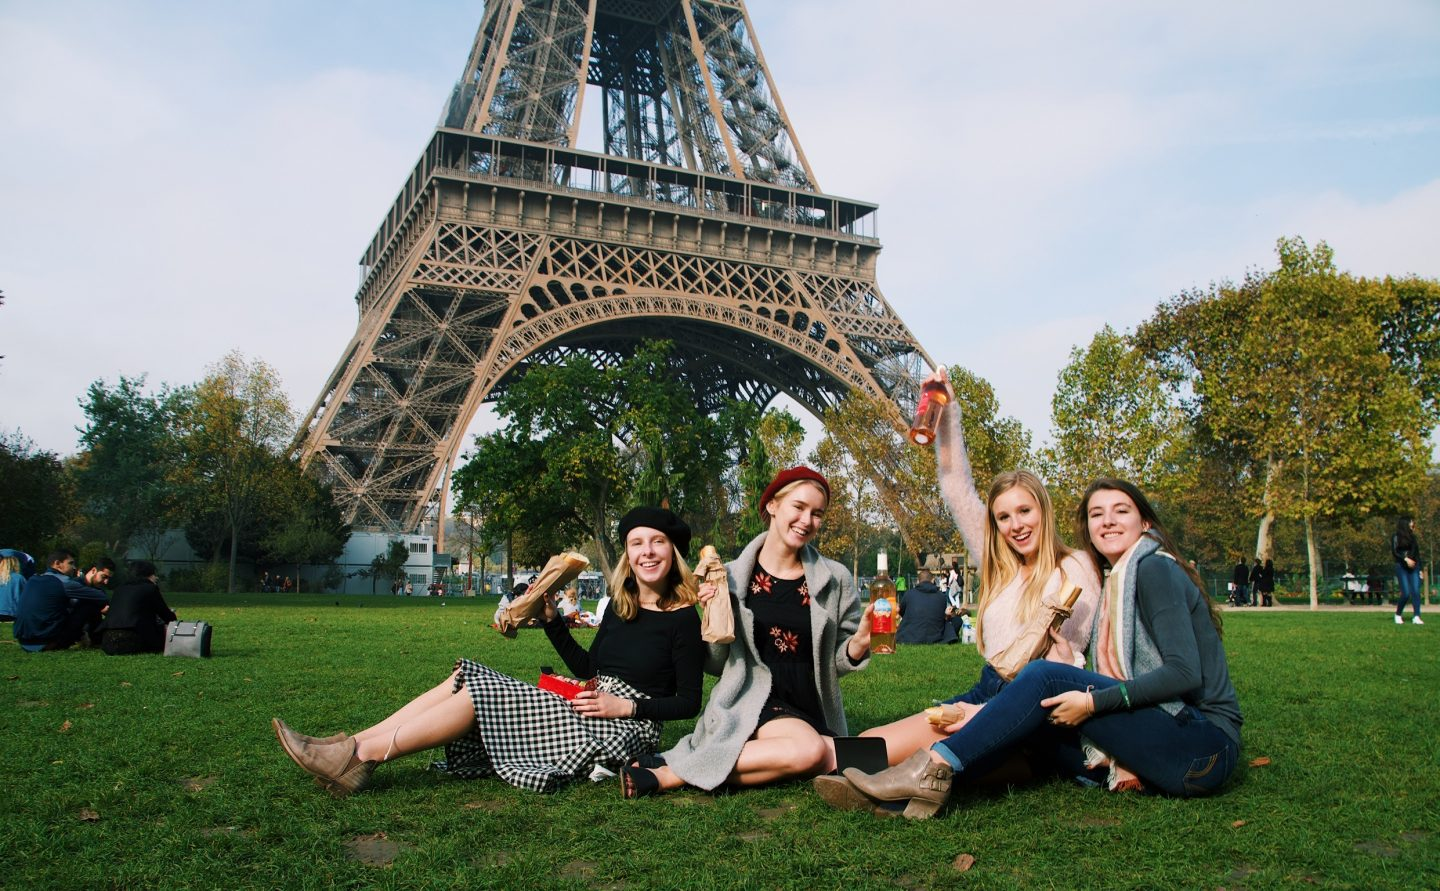 4 girls pose on grass in front of Eiffel Tower in Paris, France with wine and food while studying abroad in Europe